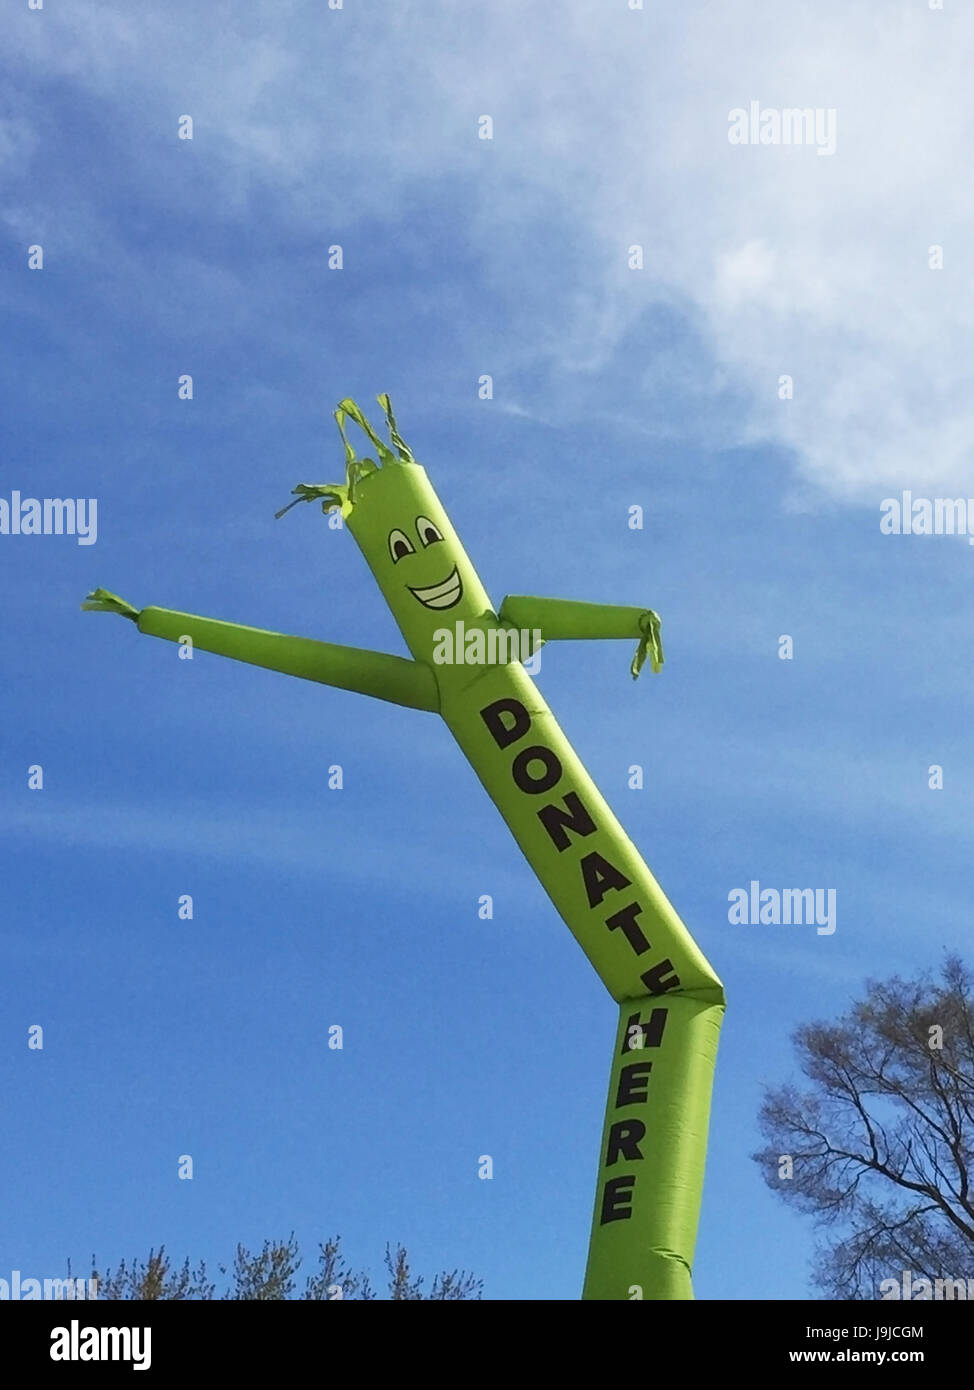 Donate Here inflatable cute cartoon character dancing against blue sky Stock Photo